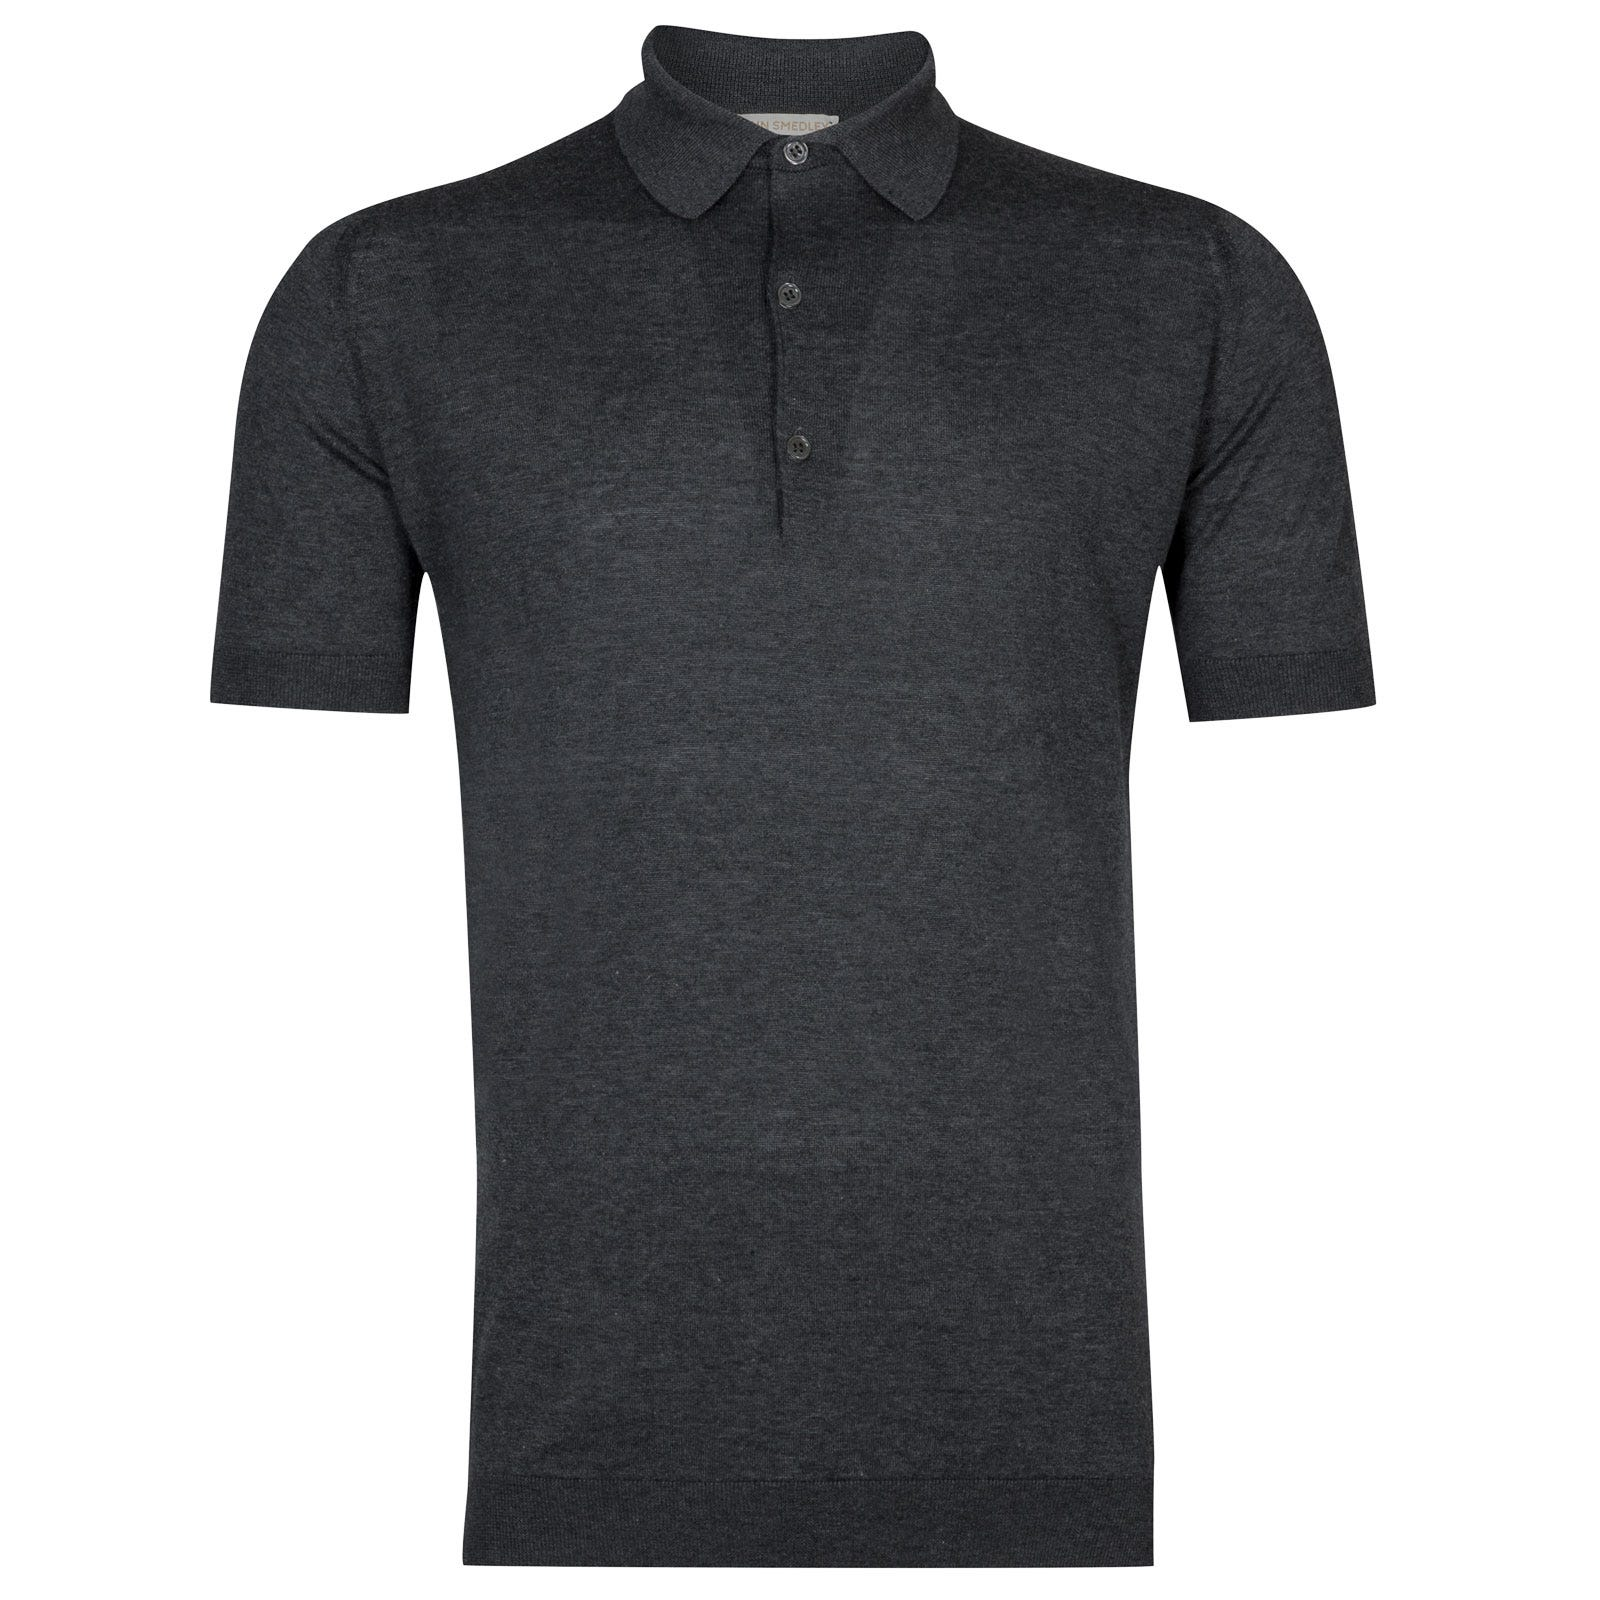 John Smedley Haddon Sea Island Cotton and Cashmere Shirt in Charcoal-S